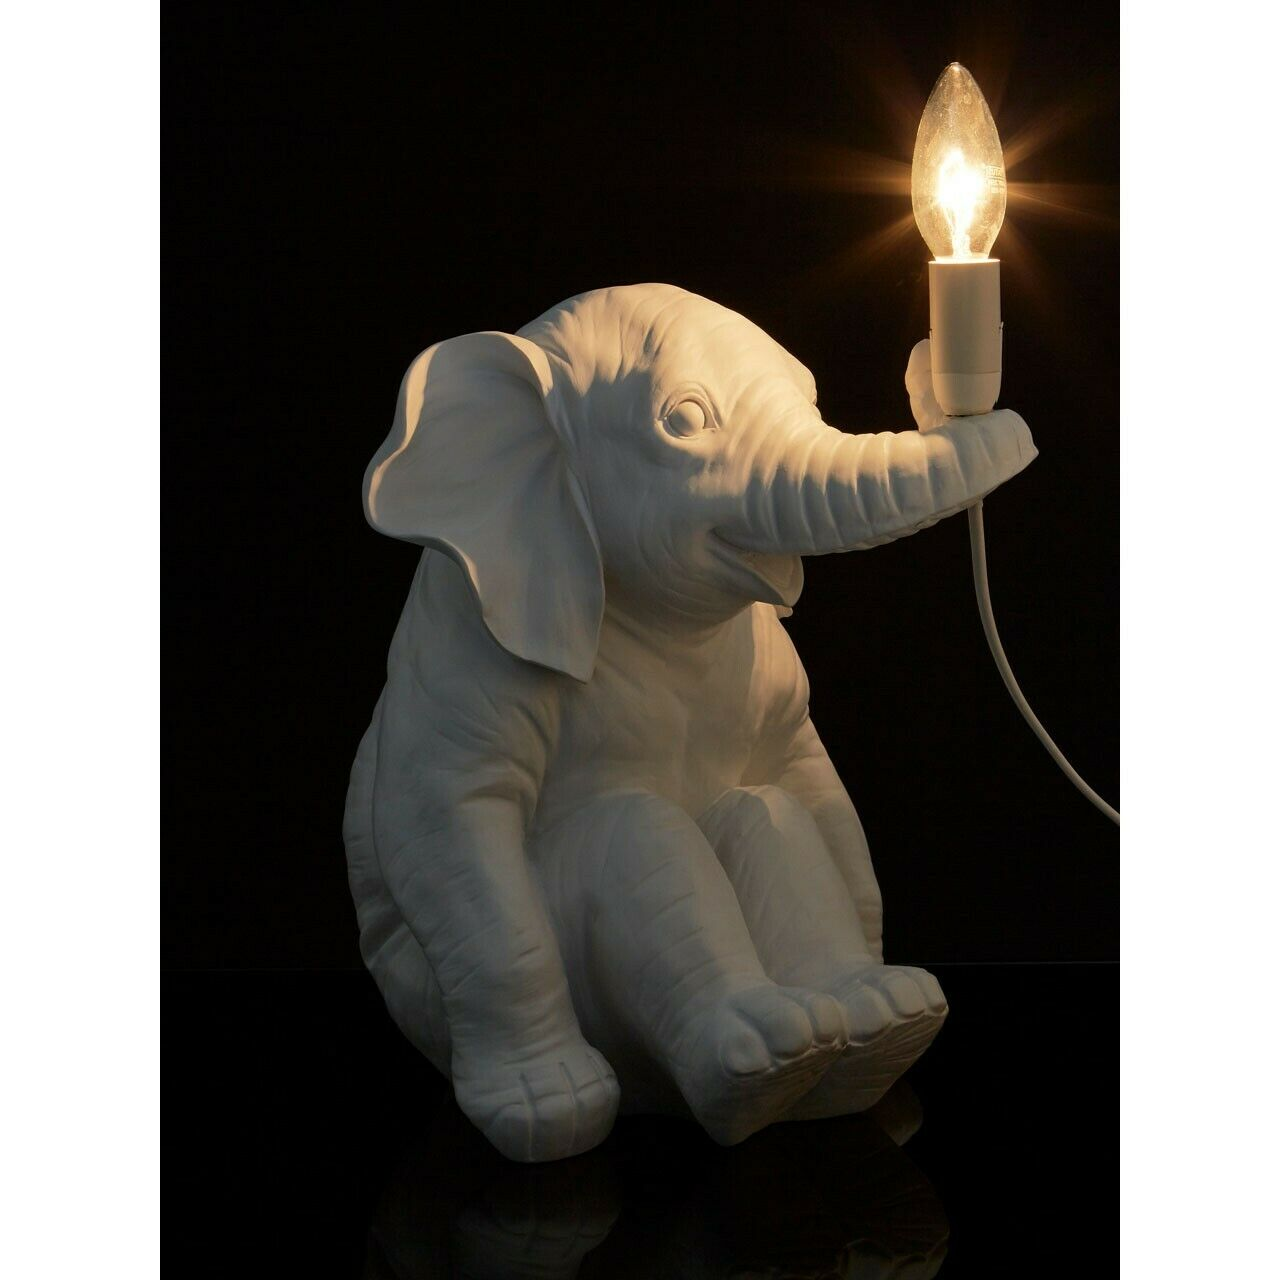 Elephant Table Lamp Weiß Sitting Animal Sculpture Candle Bulb Ambient Lighting